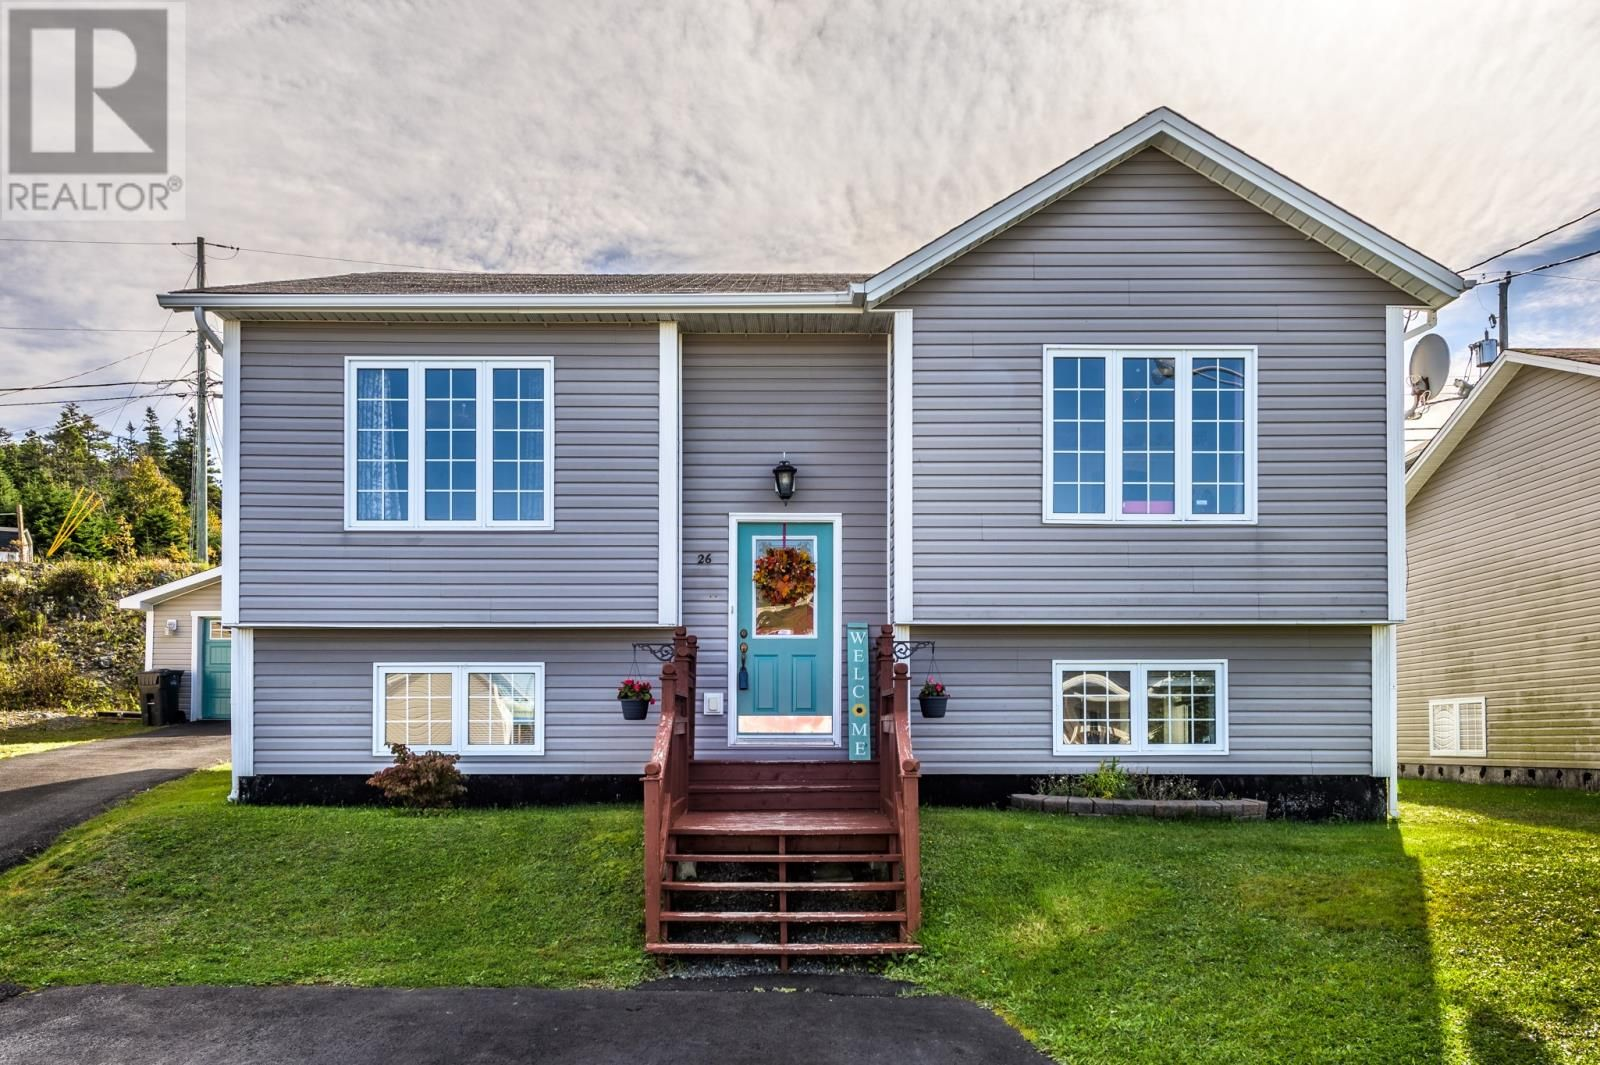 Main Photo: 26 Cameo Drive in Paradise: House for sale : MLS®# 1237816